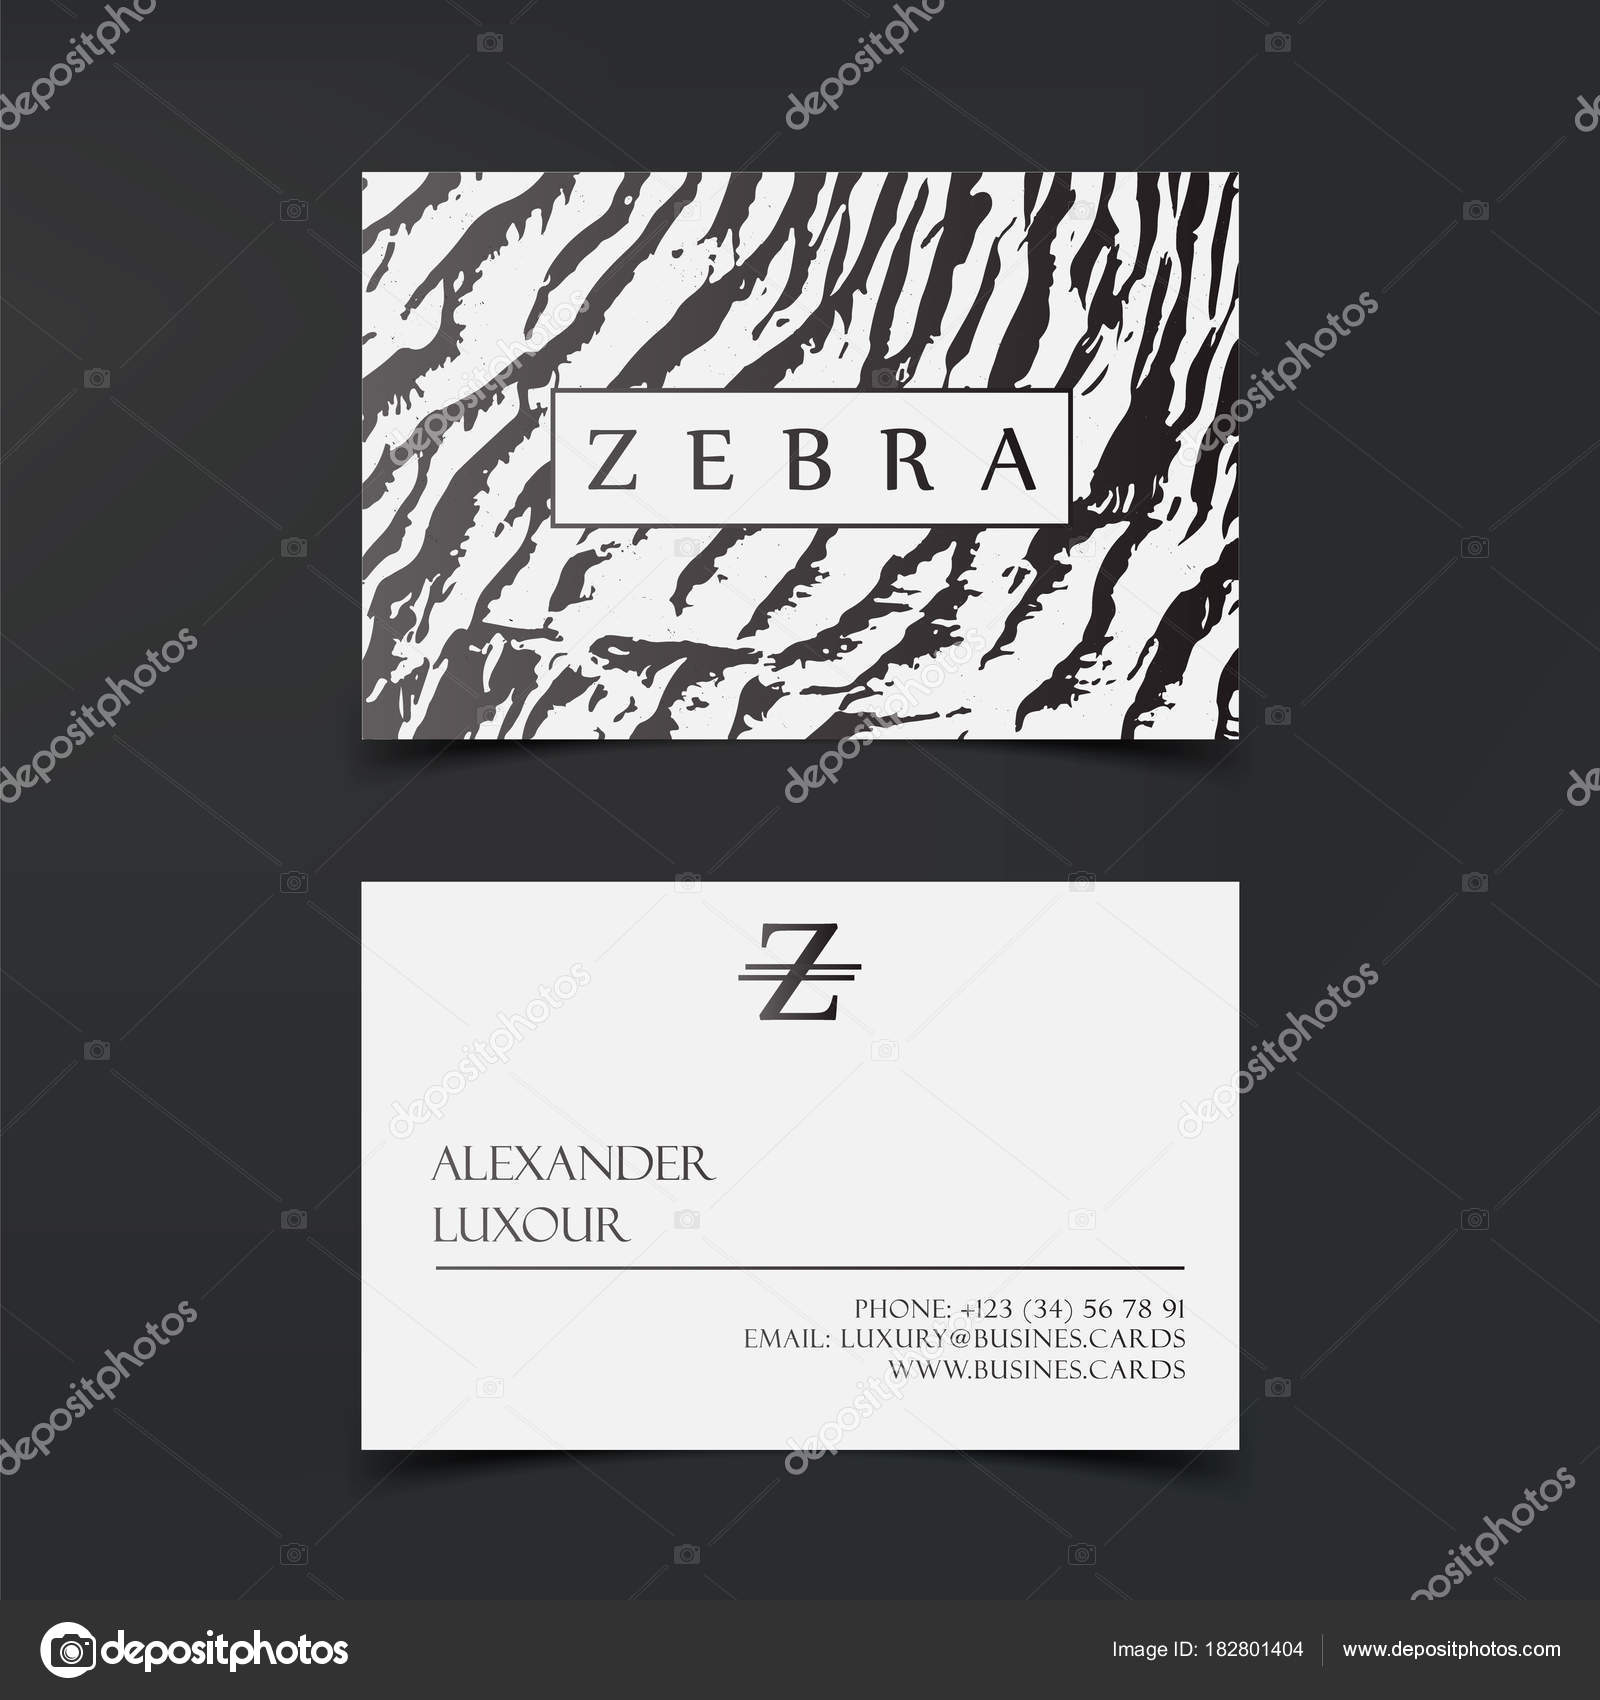 Luxury fashion business cards vector template, banner and cover with ...